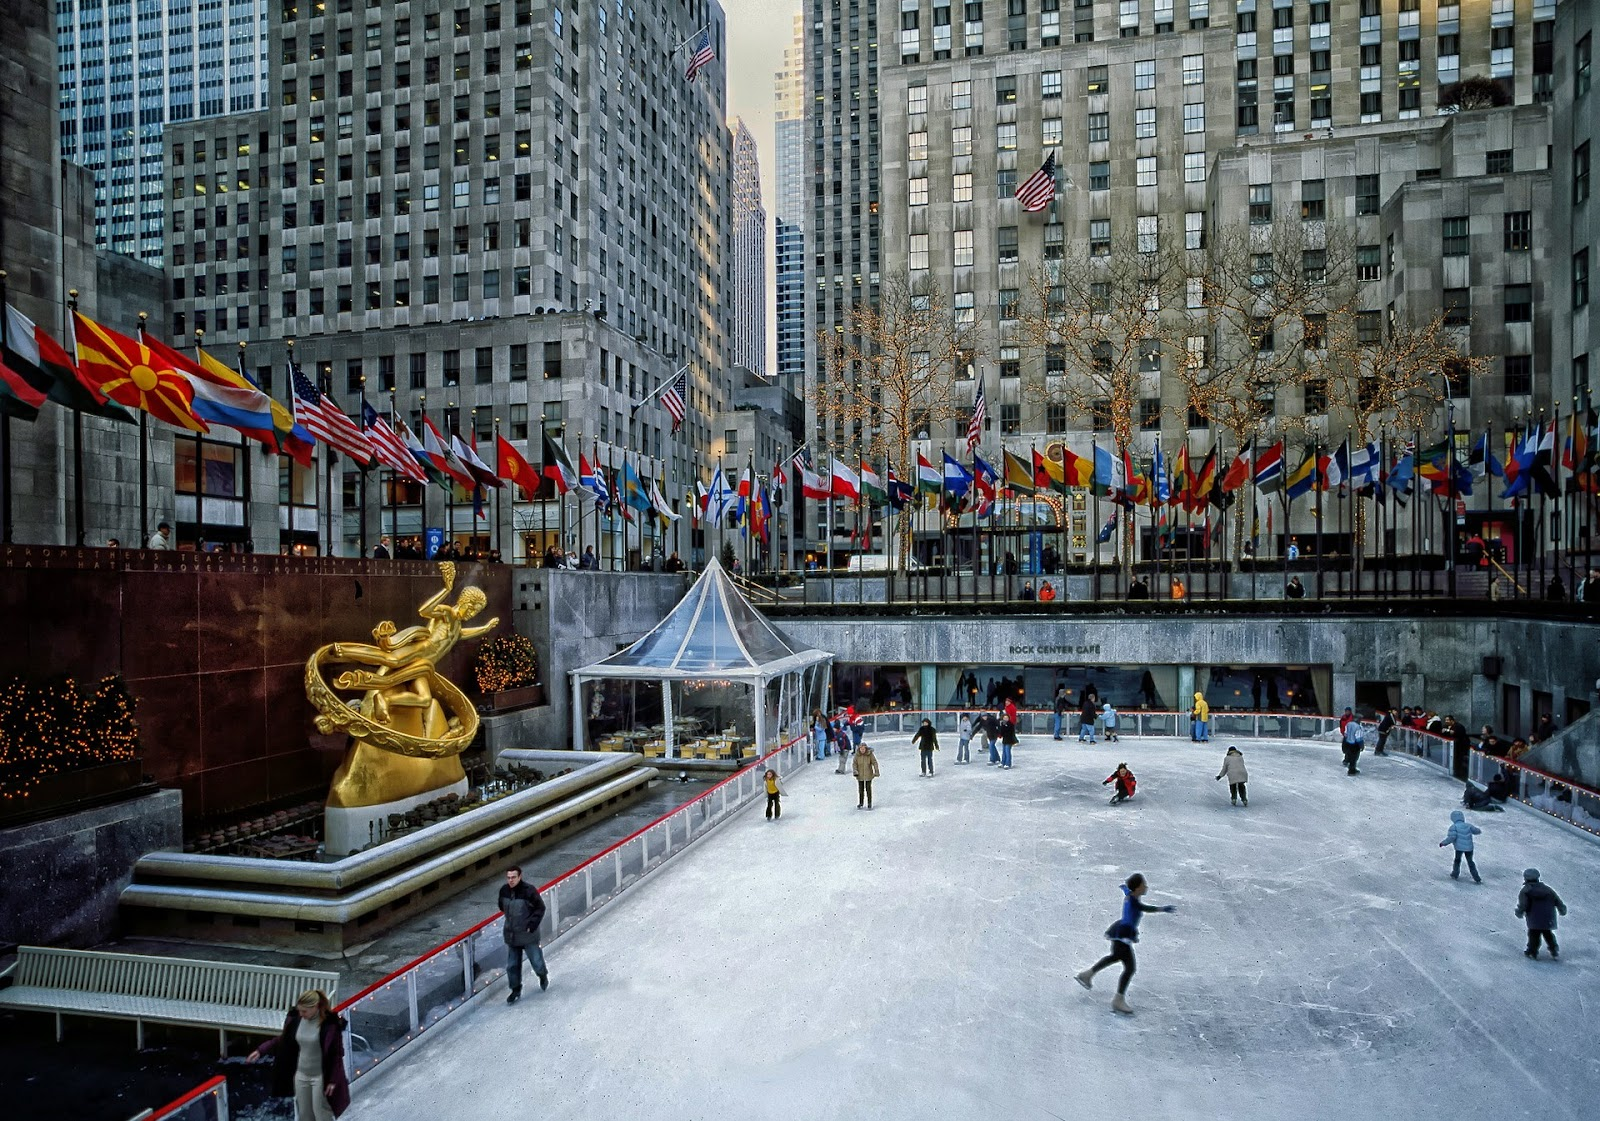 Rockefeller Center in the snow